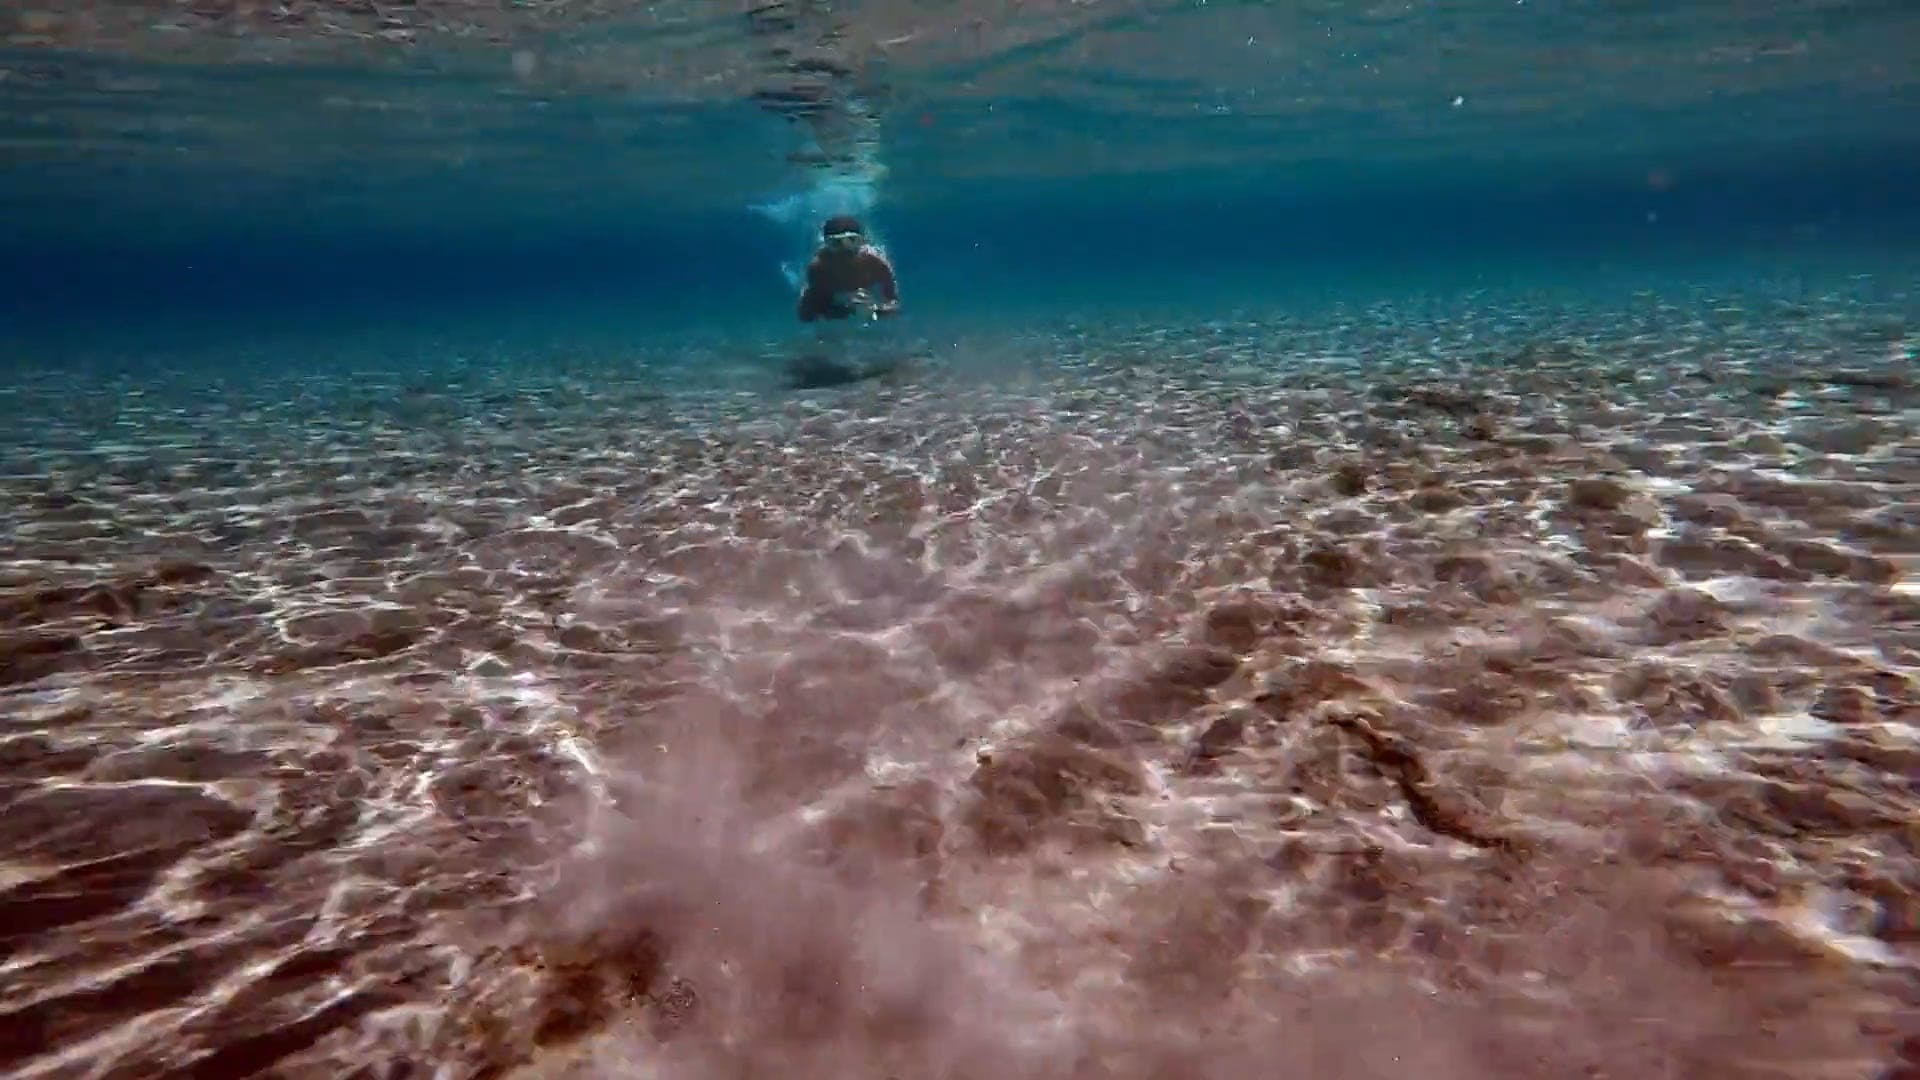 Video Of Person Swimming Underwater